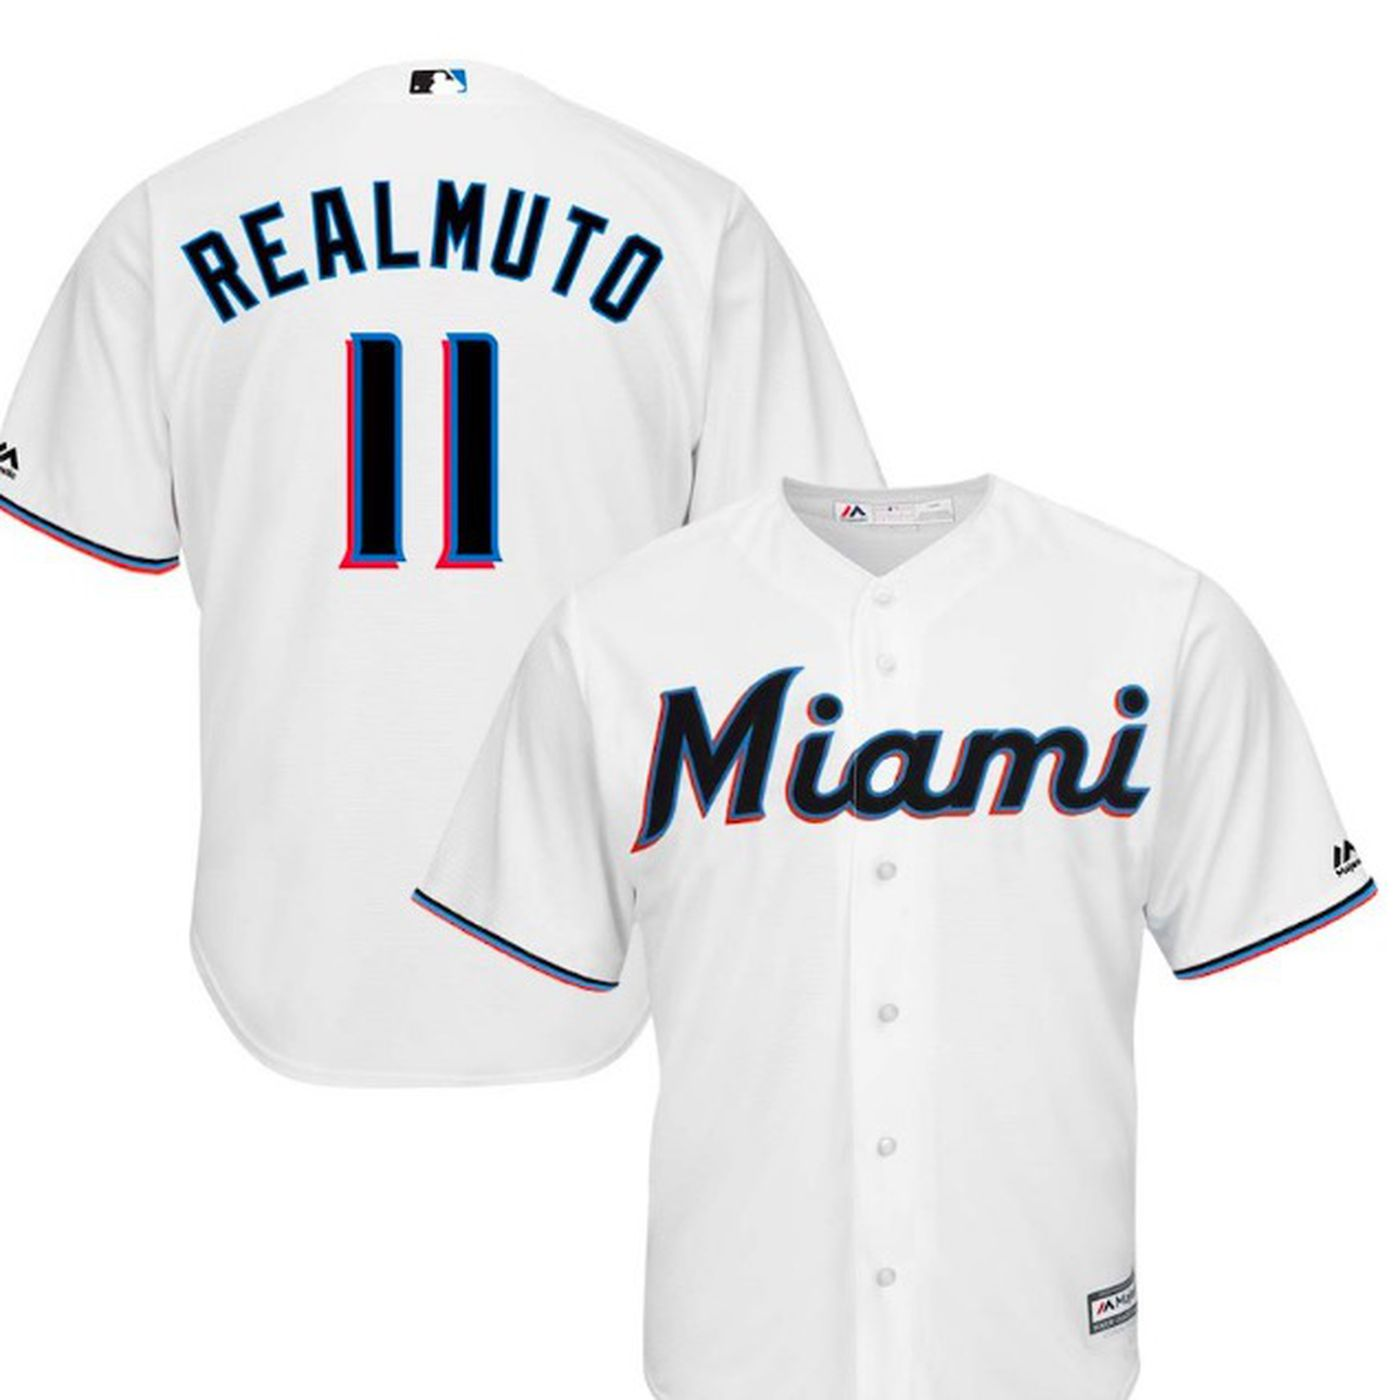 3a54c8114 The Miami Marlins  new uniforms